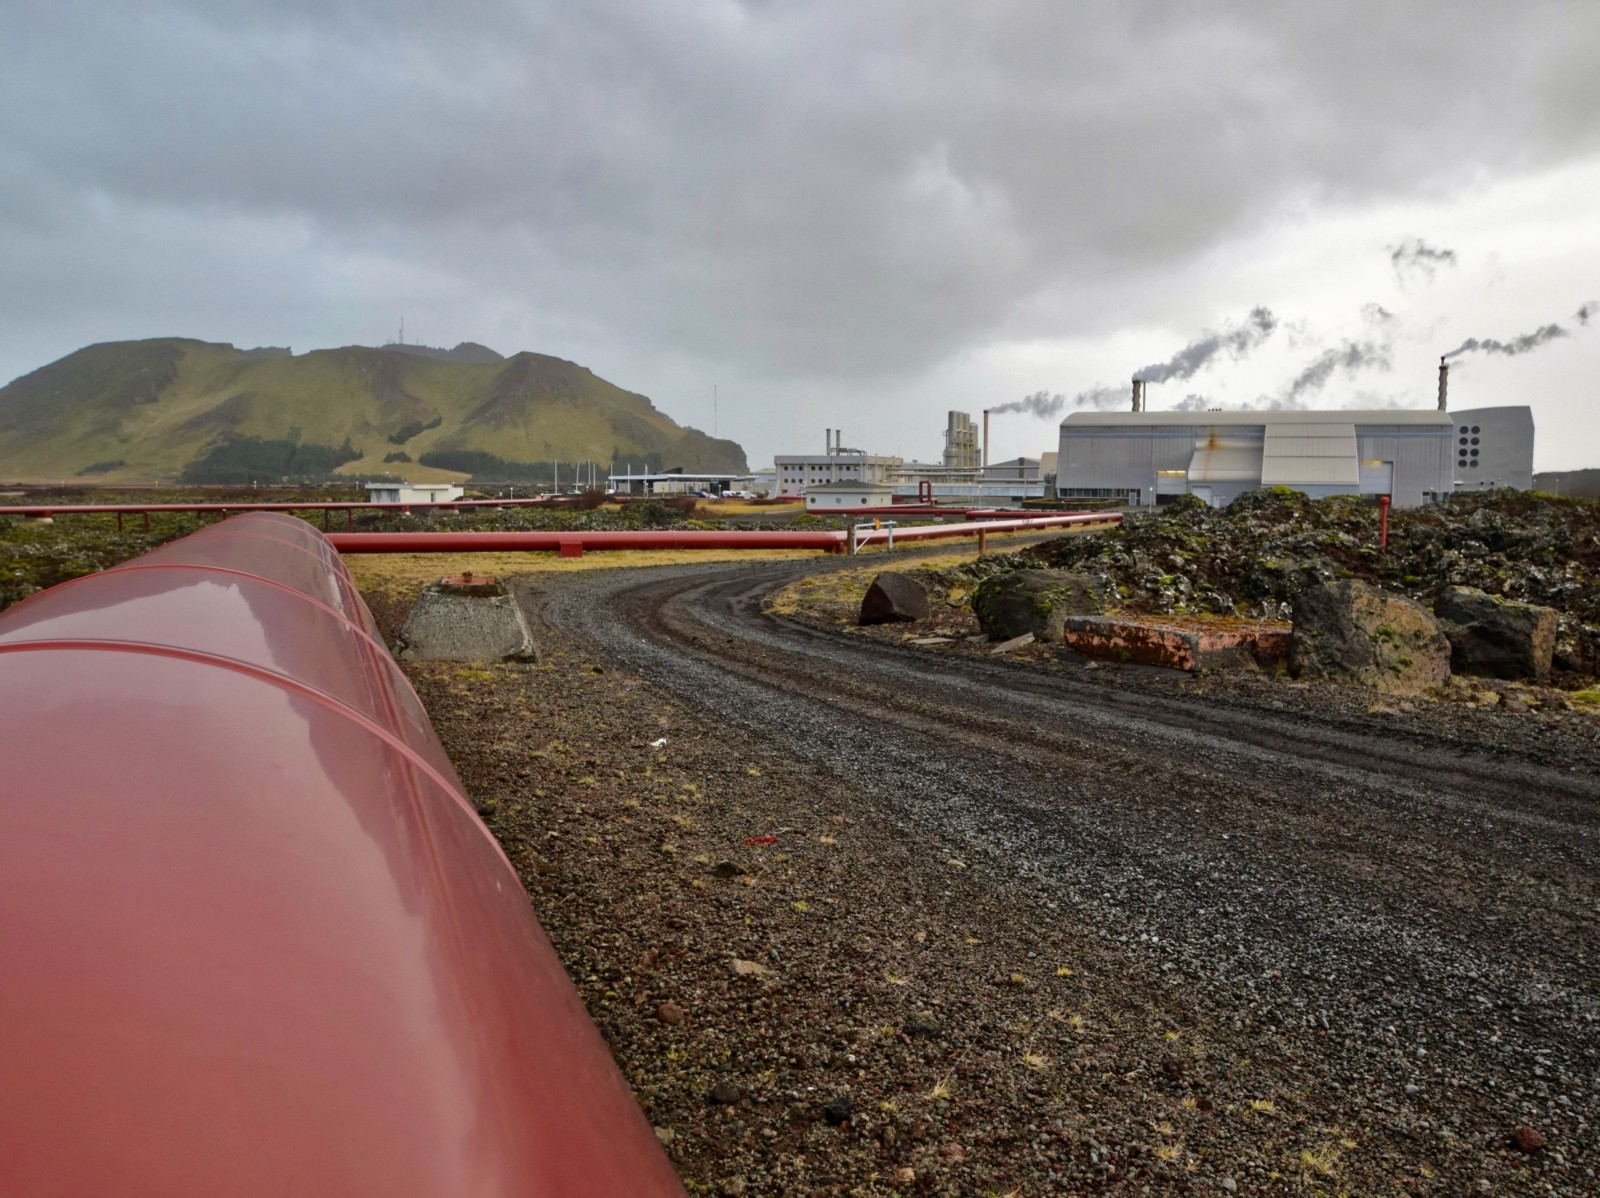 Geothermal energy power station in Iceland